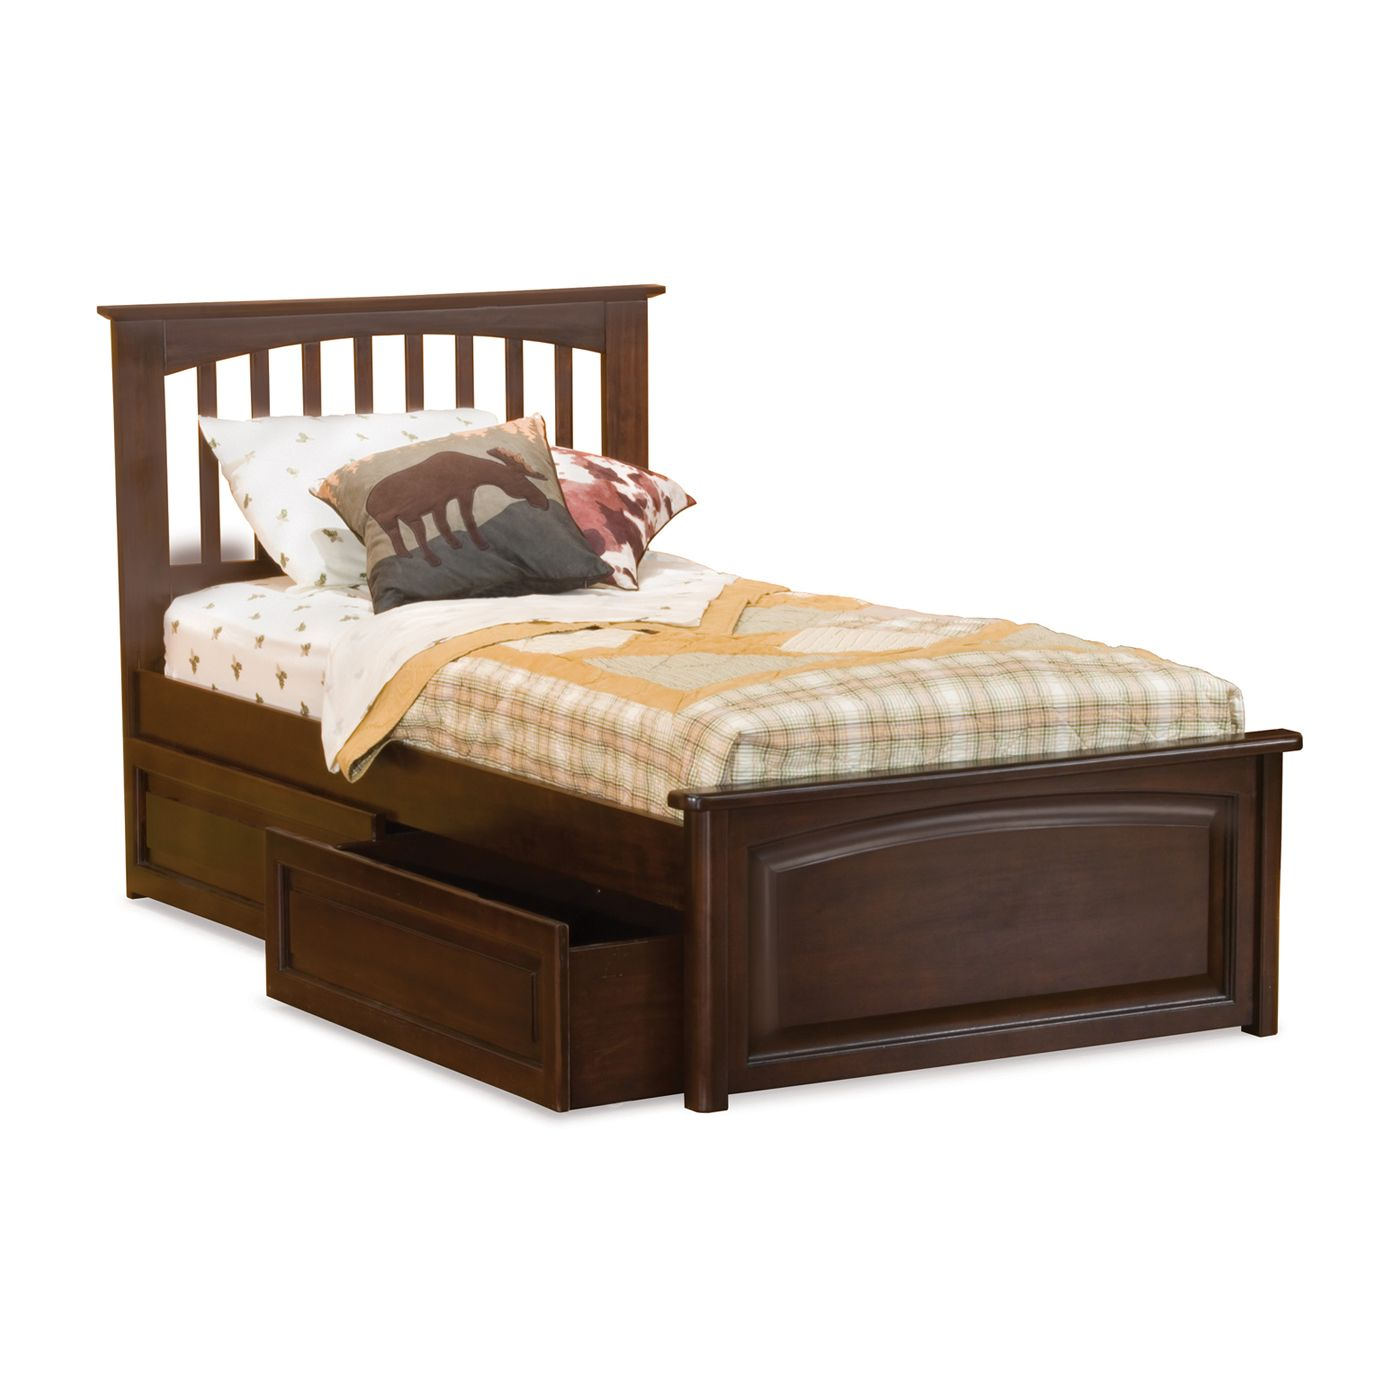 images about Boys shared bedroom on Pinterest Furniture